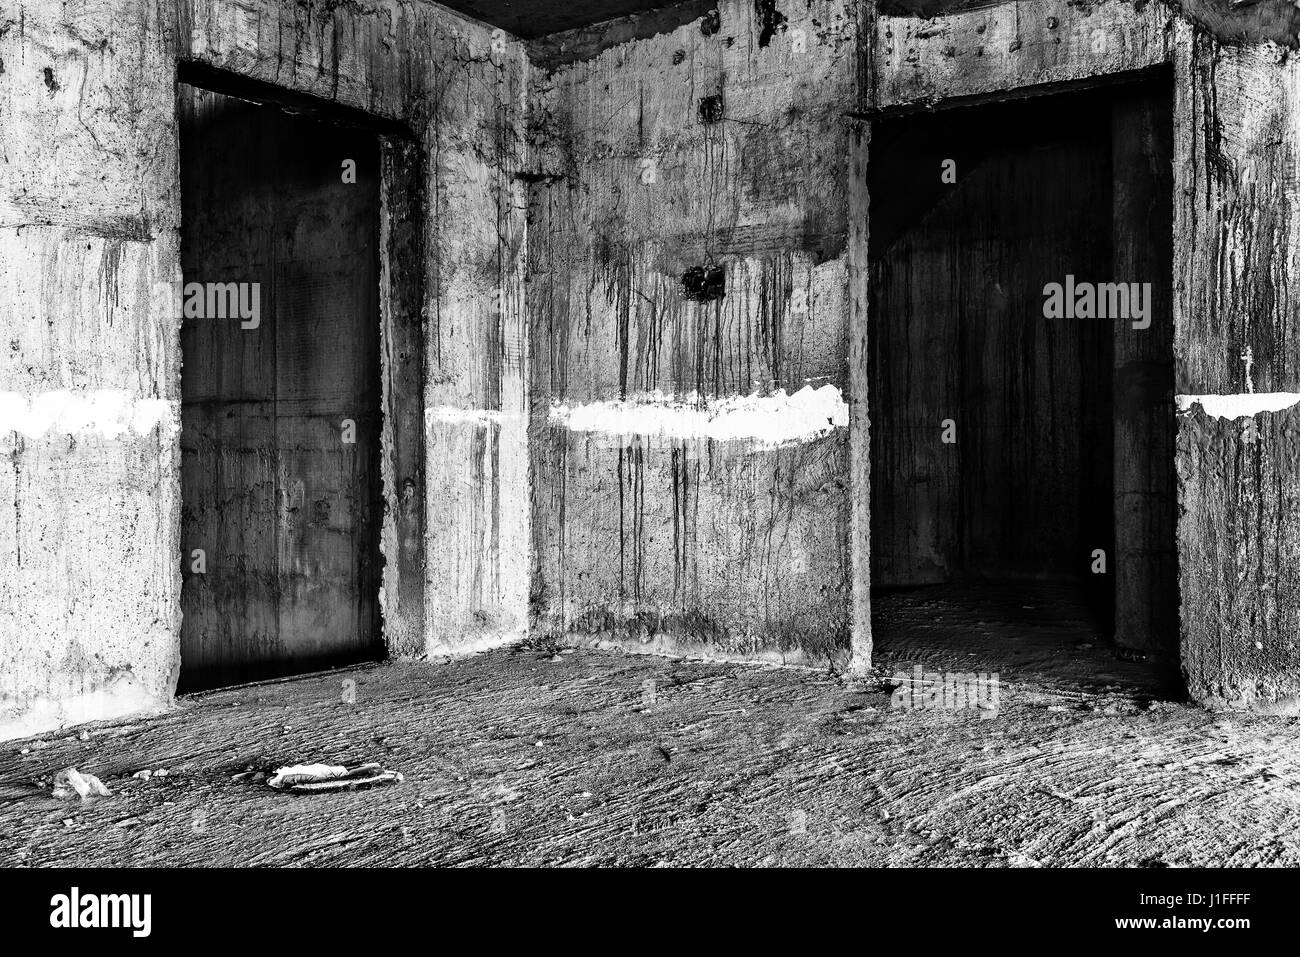 abandoned building creepy place, darkness horror creepy and halloween background - Stock Image